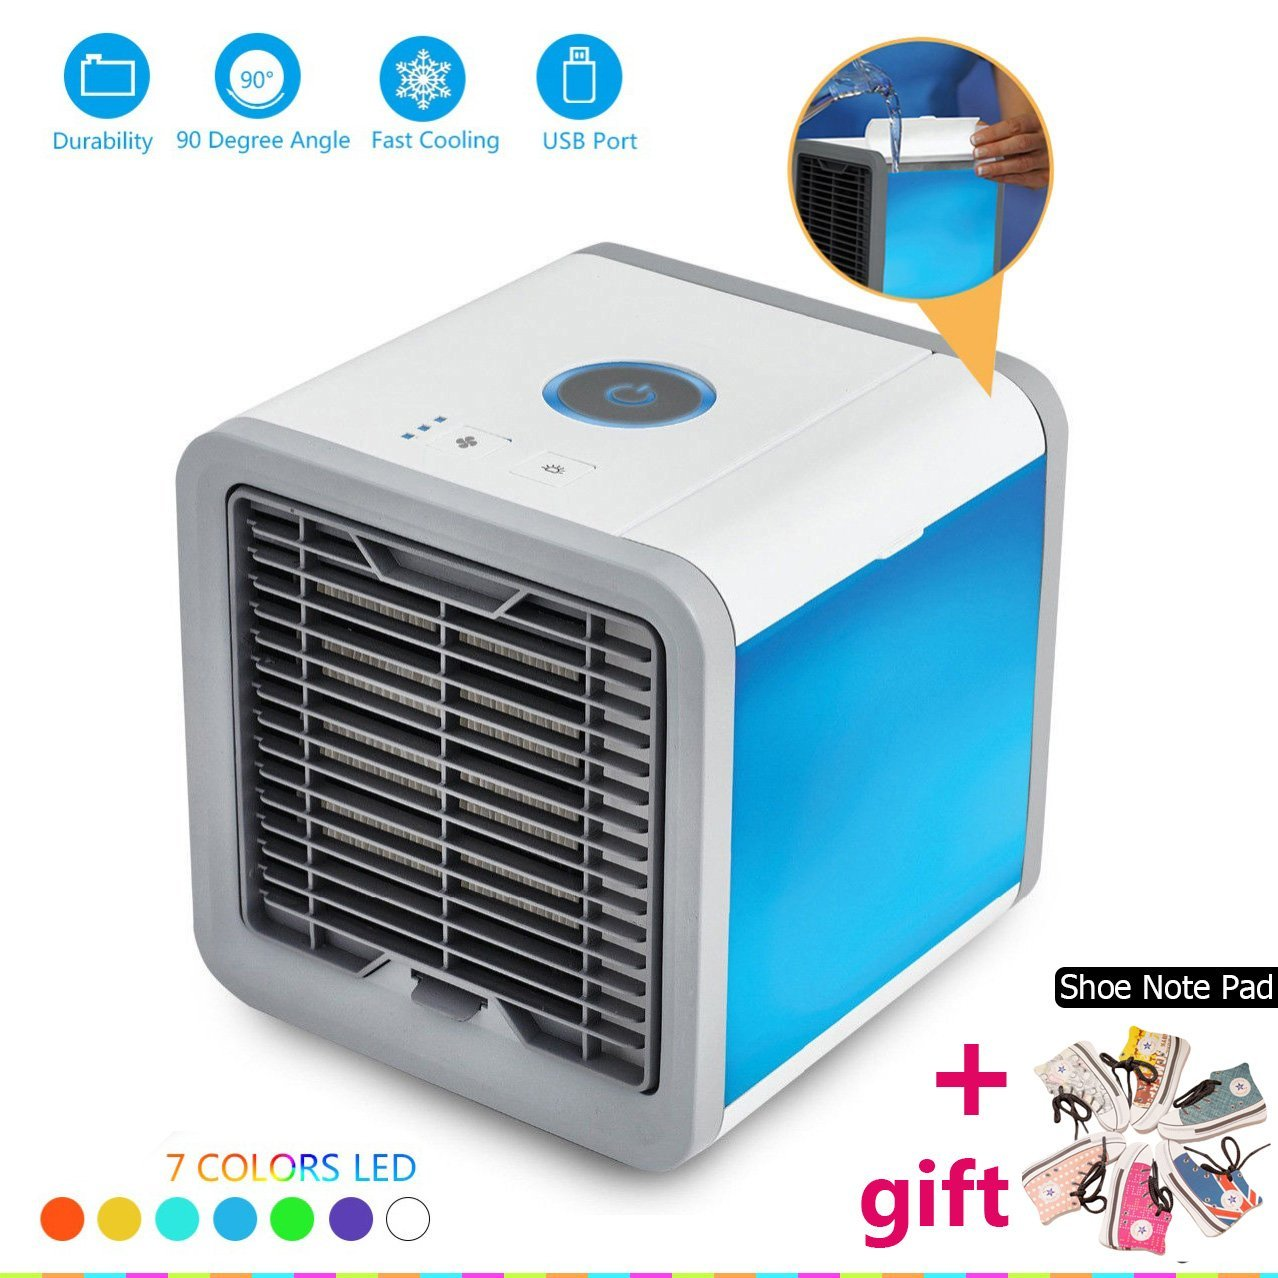 2019 New Air Cooler Arctic Air Personal Space Cooler Quick&Easy Way to Cool Outdoor Desktop Air Conditioner Home Portable Cooler